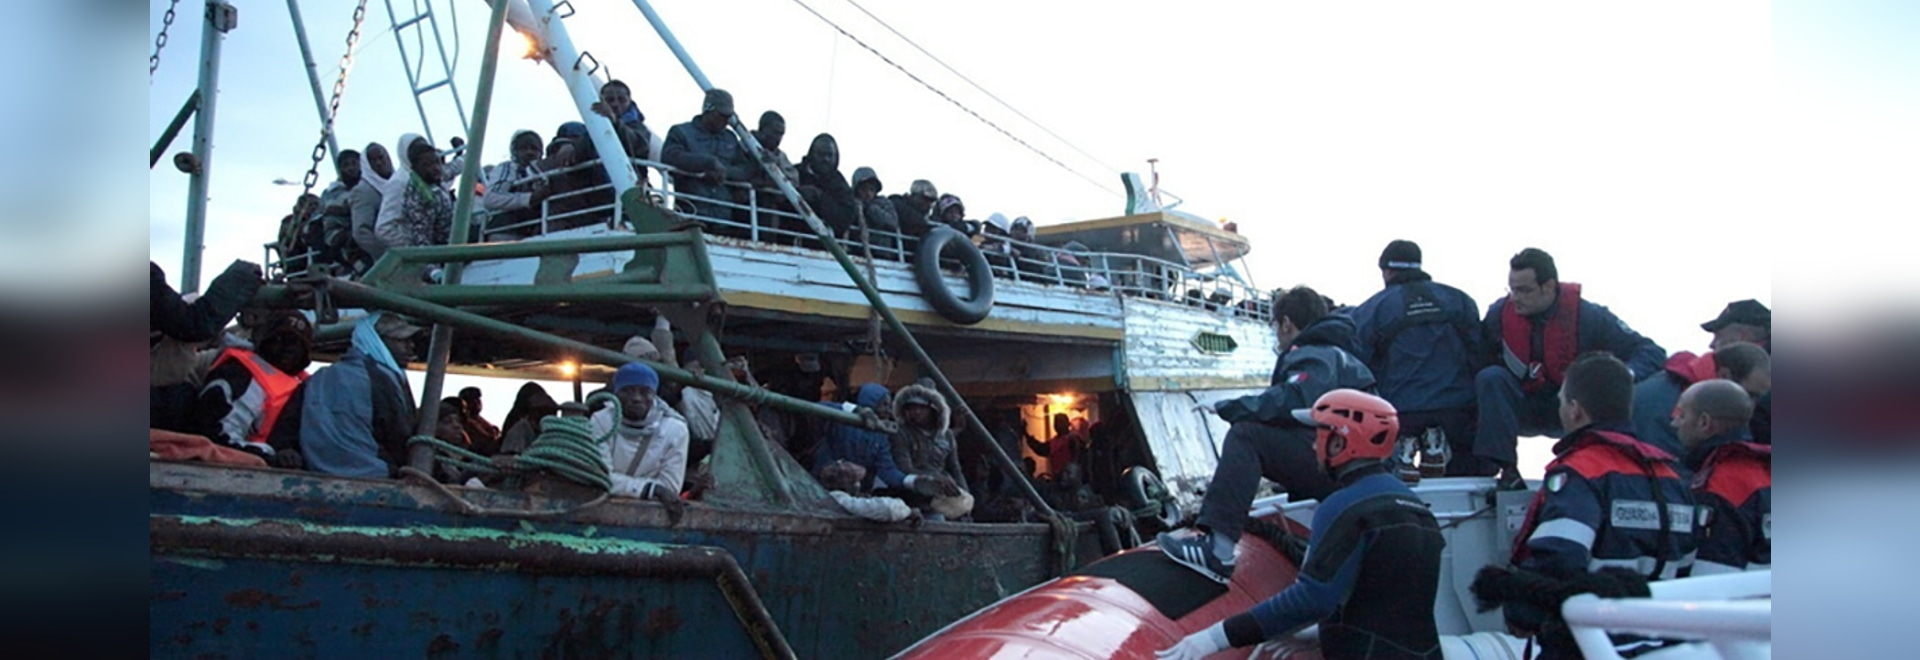 Italian Coast Guard rescues migrants and refugees bound for Italy